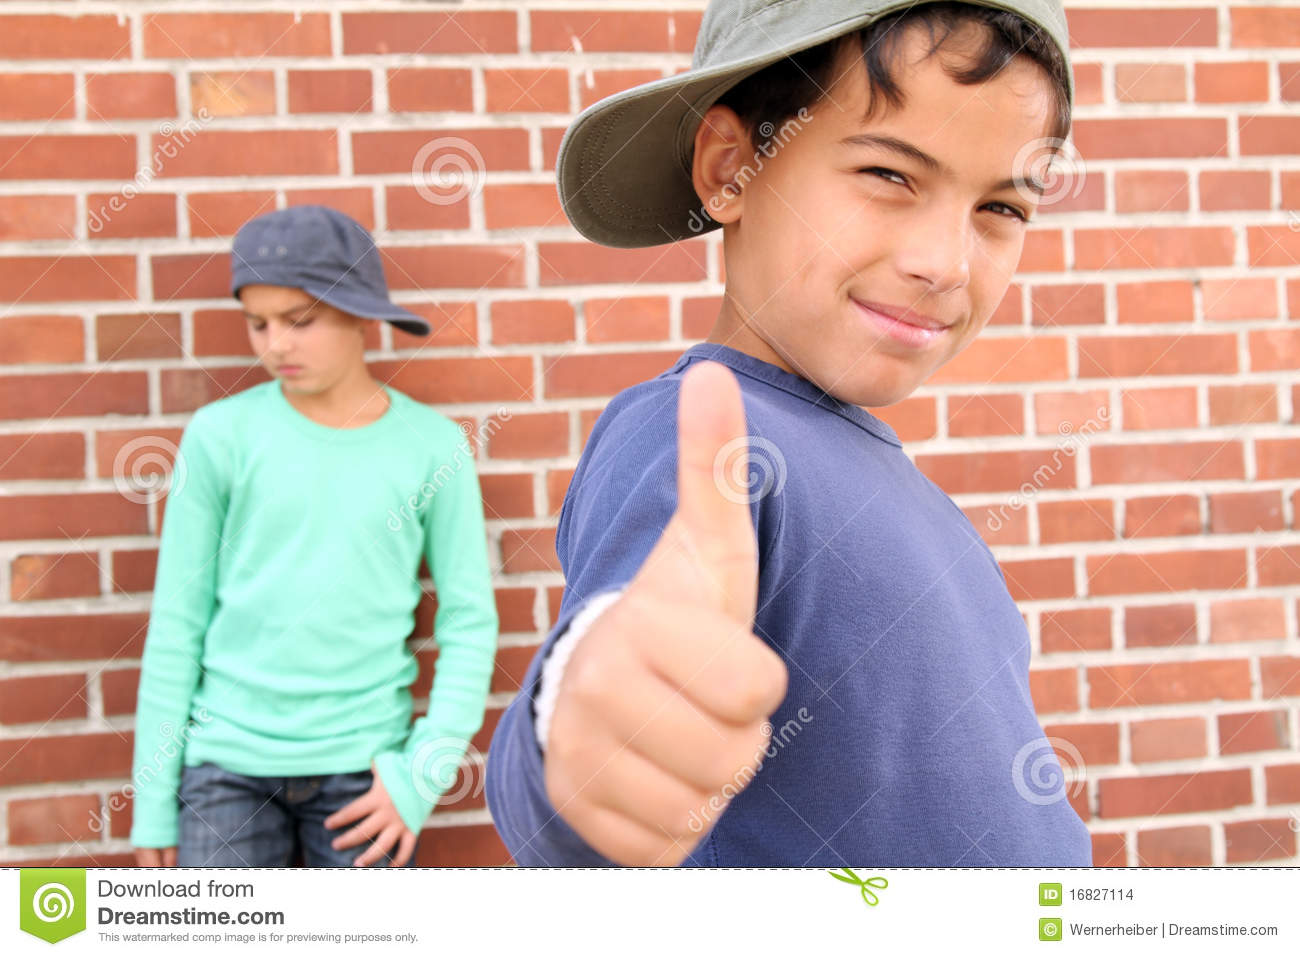 cool kids stock images - Cool Pictures For Kids